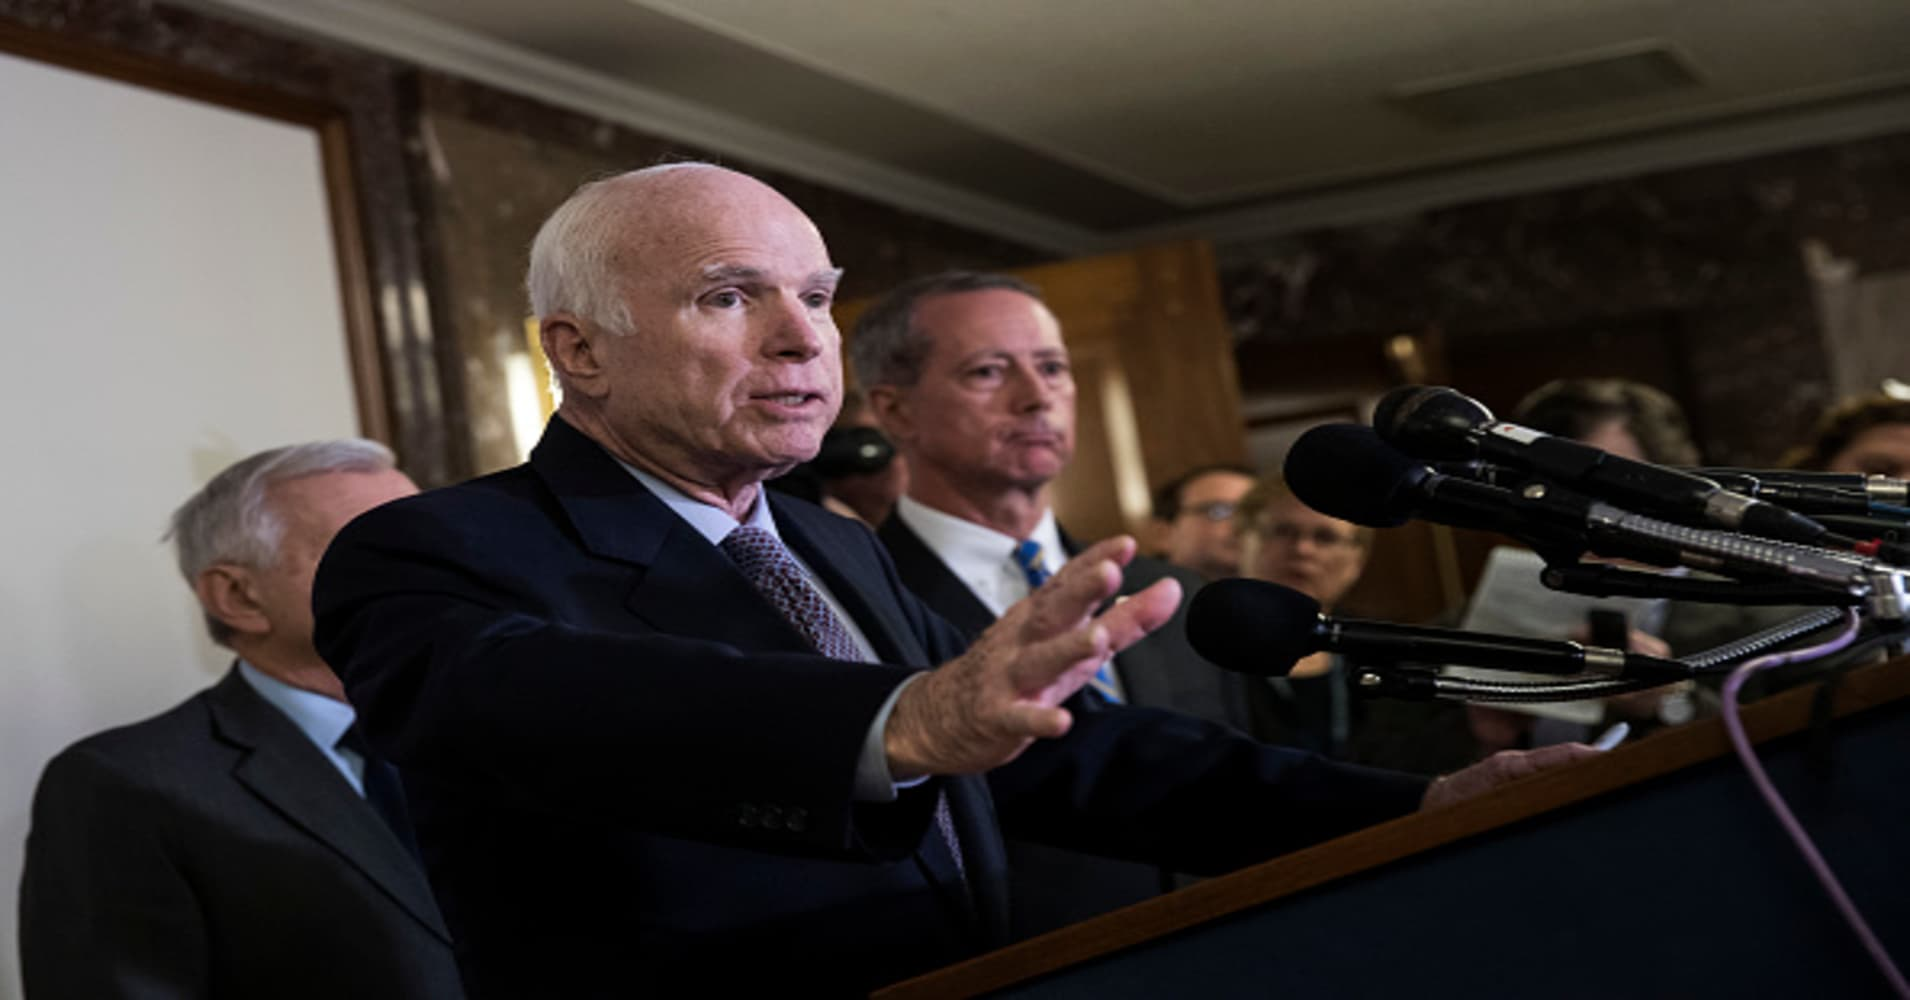 McCain was committed to country, family, honor and duty , says former  senator